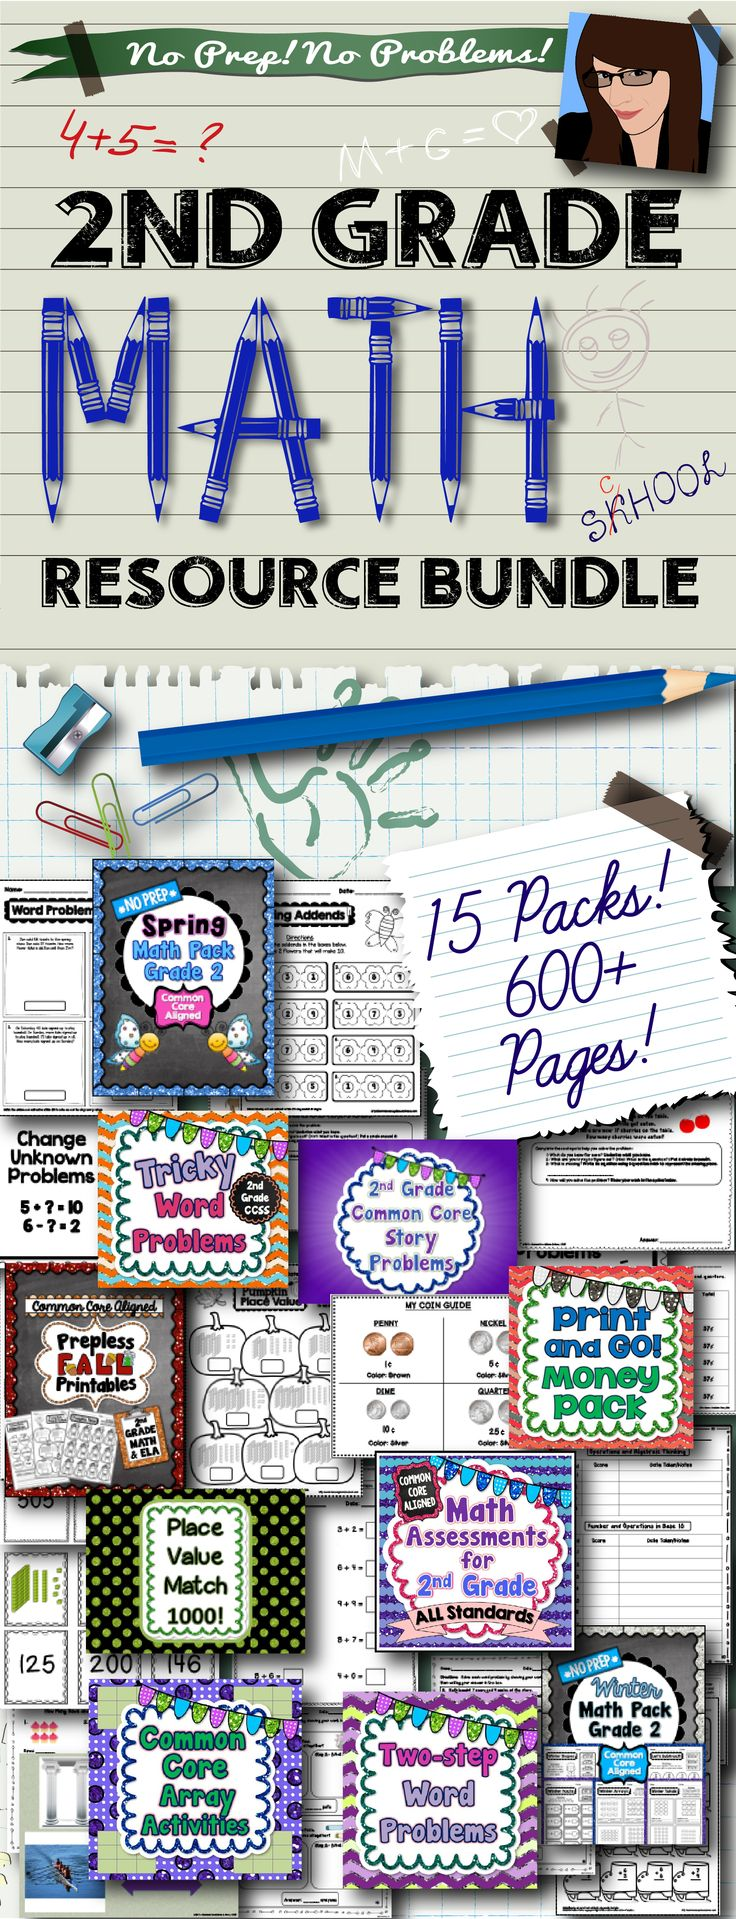 2nd Grade Math Resources..600+ Pages!